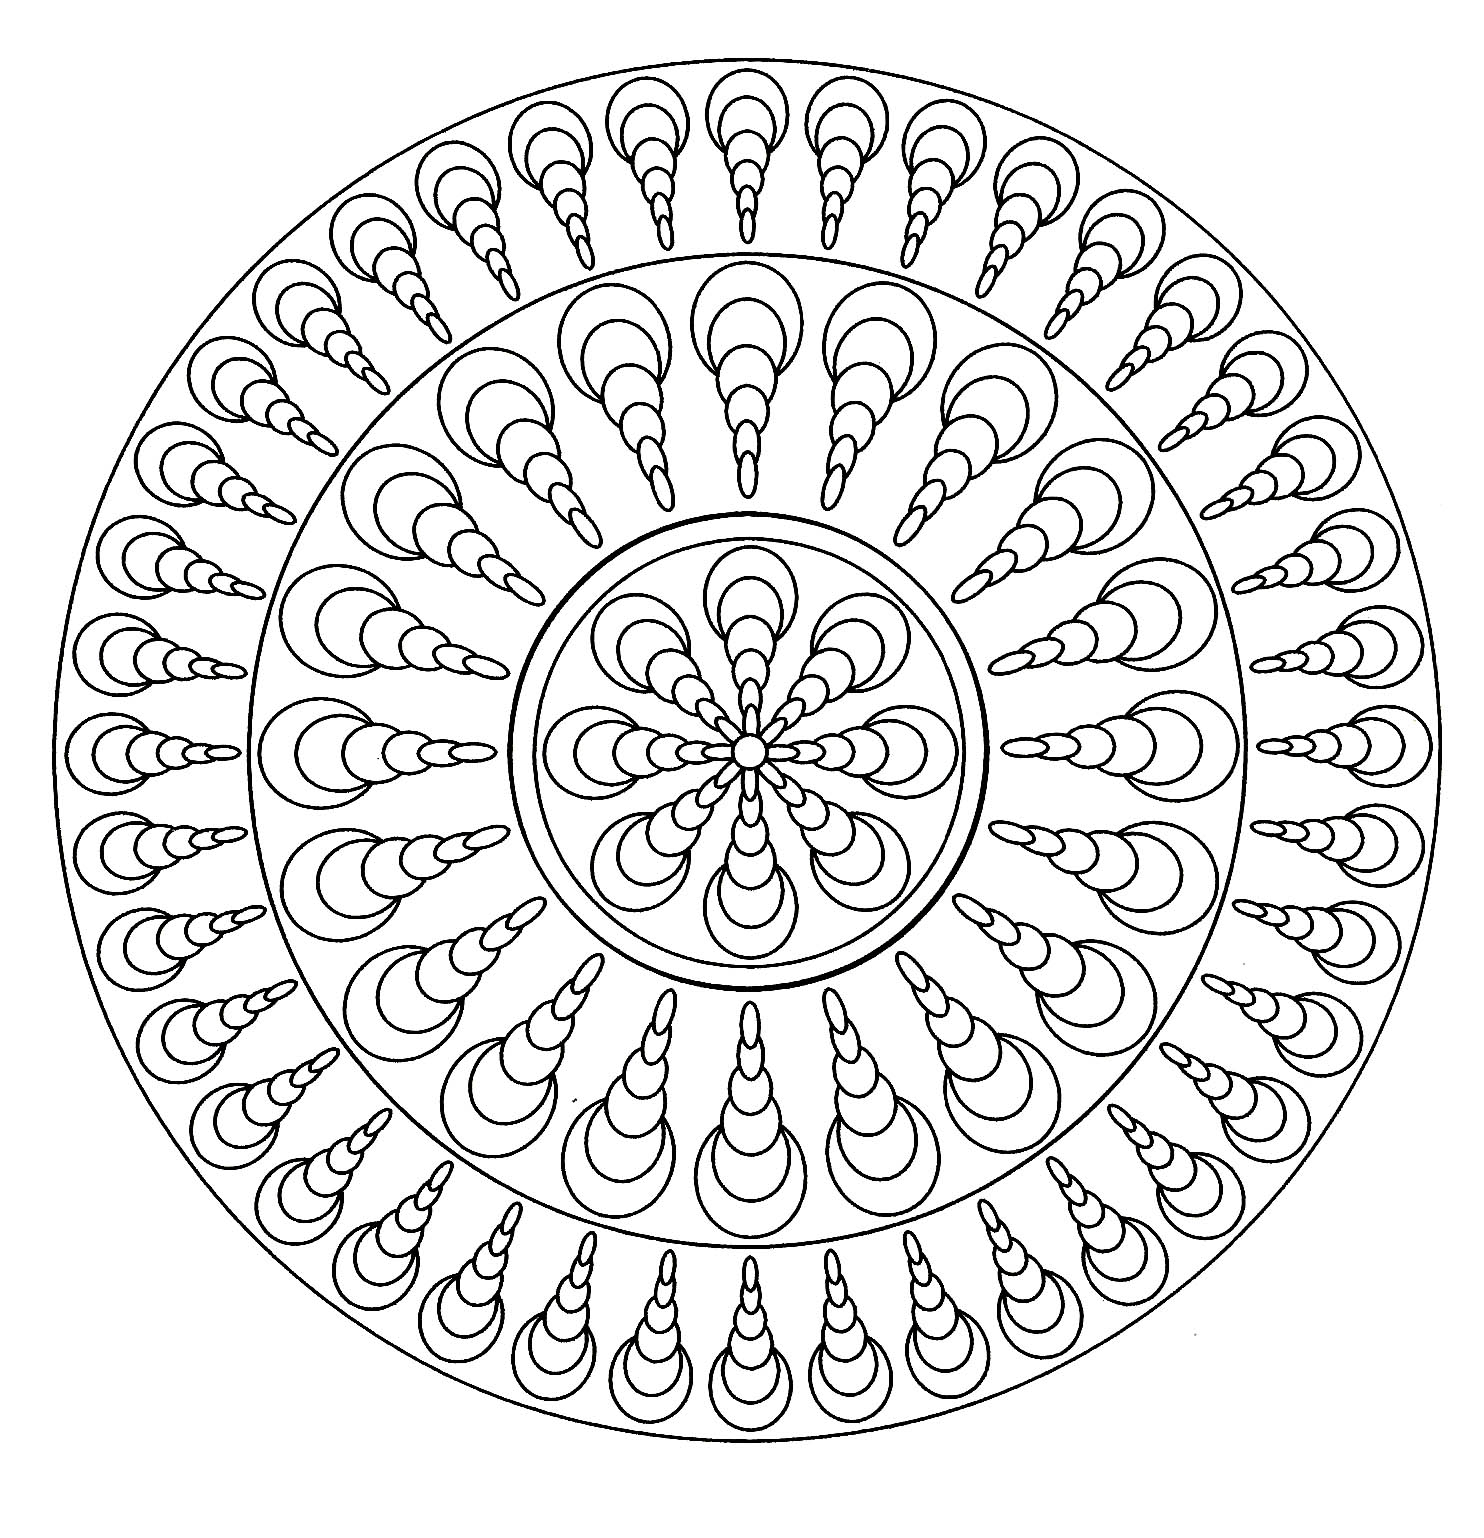 mandala facile 4 mandalas coloriages difficiles pour adultes. Black Bedroom Furniture Sets. Home Design Ideas